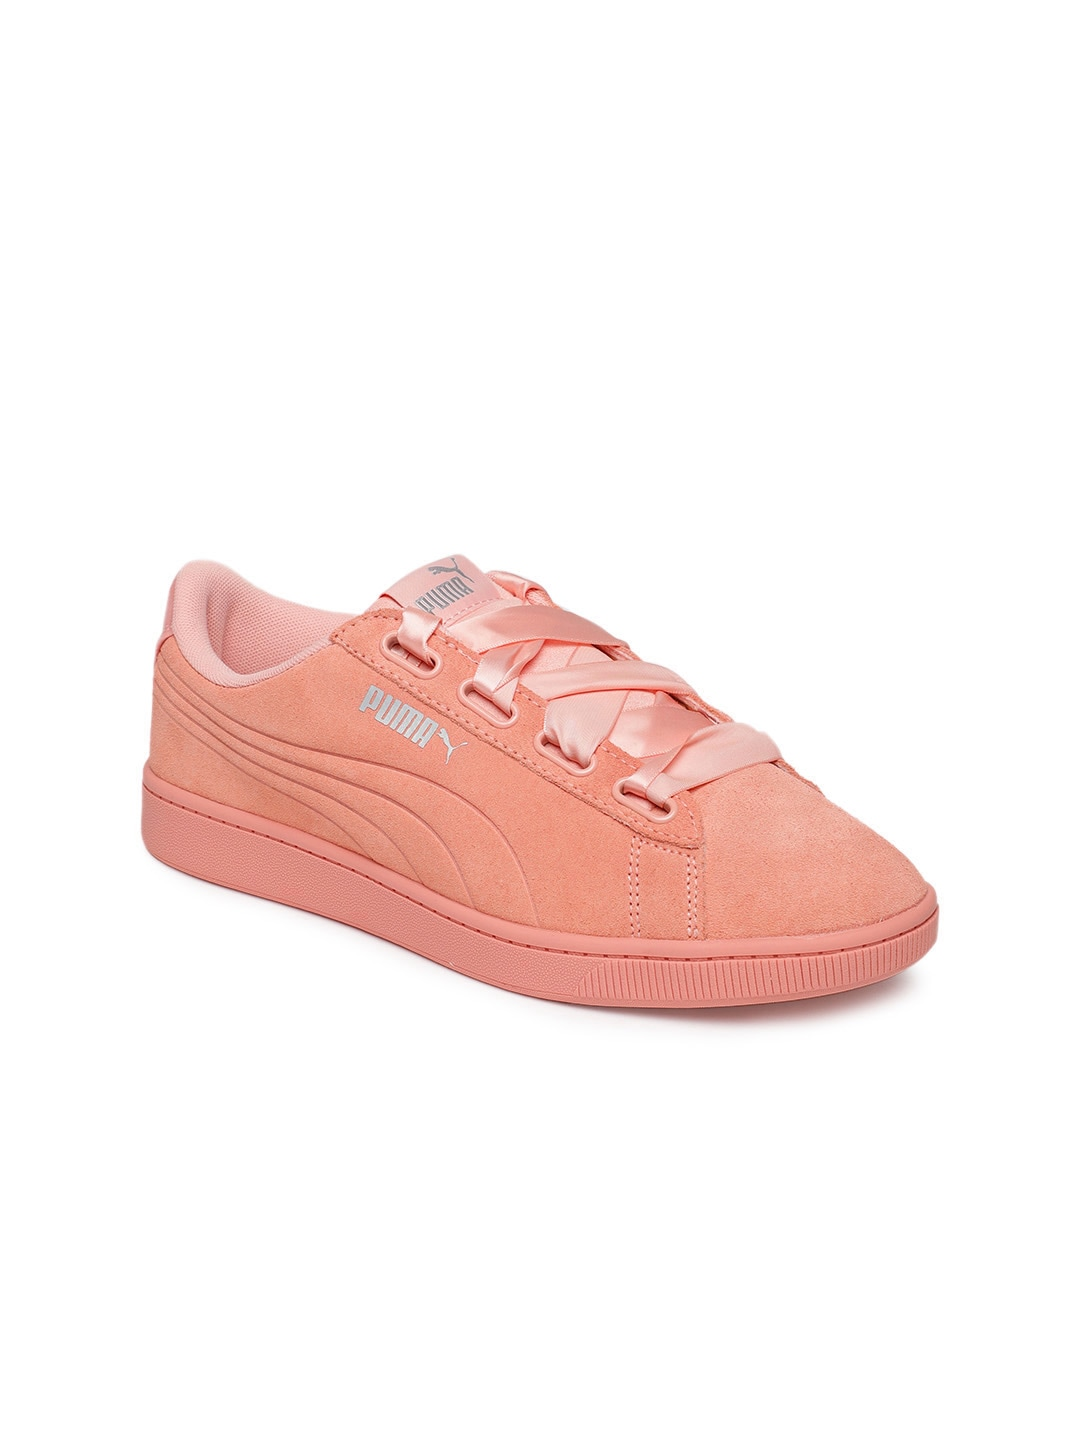 abdd96c16dea9a Puma Suede Footwear - Buy Puma Suede Footwear online in India